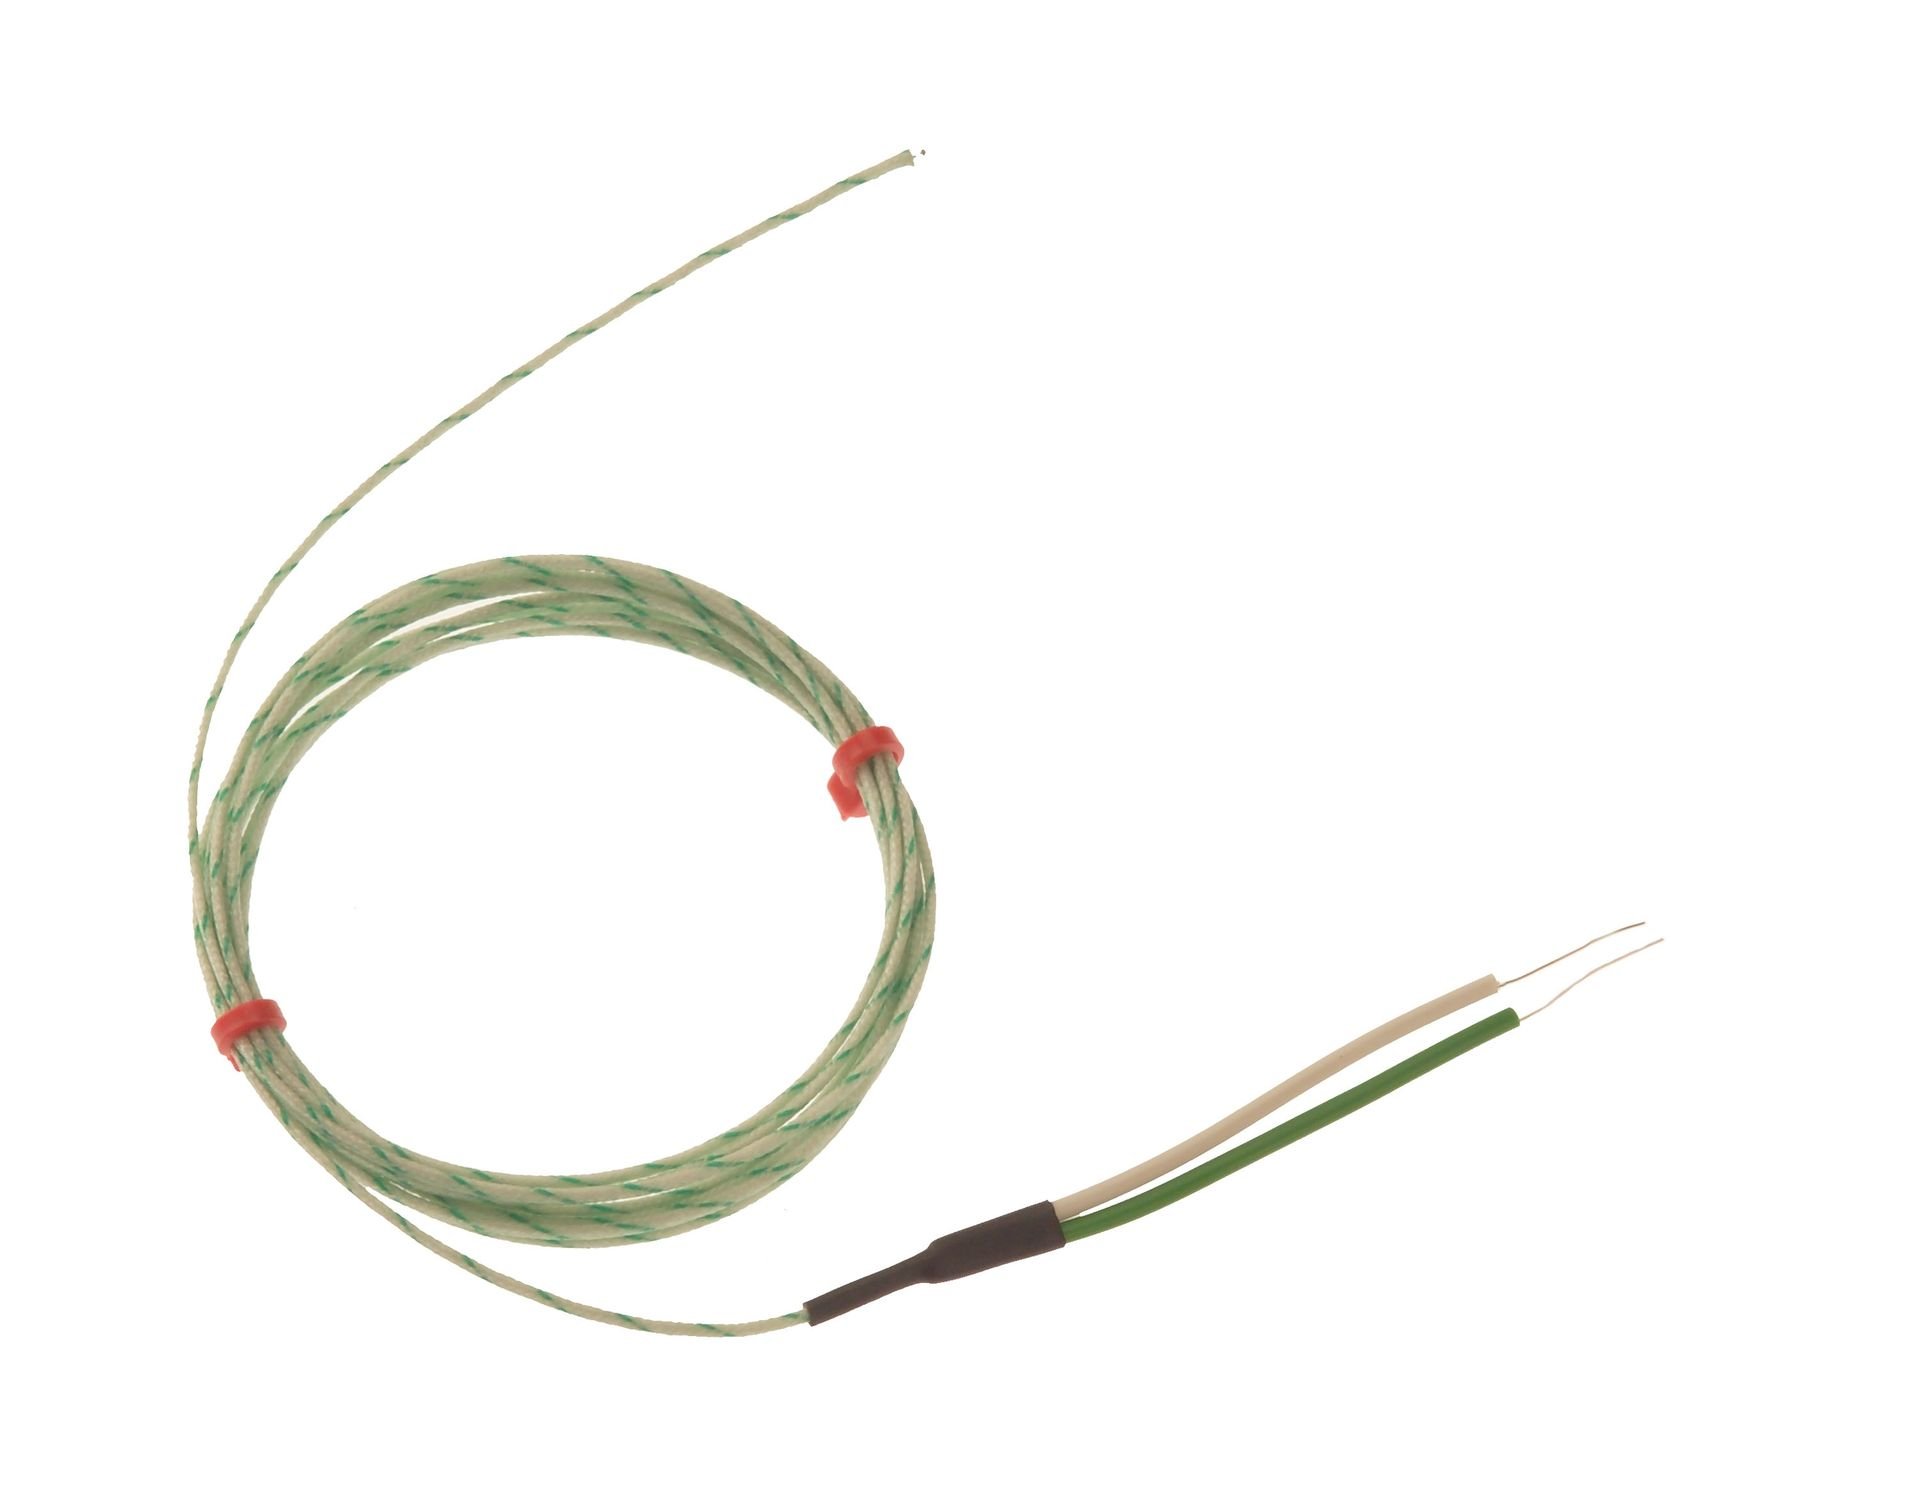 Insulated electrical cable / for thermocouples / fiberglass-sheathed ...